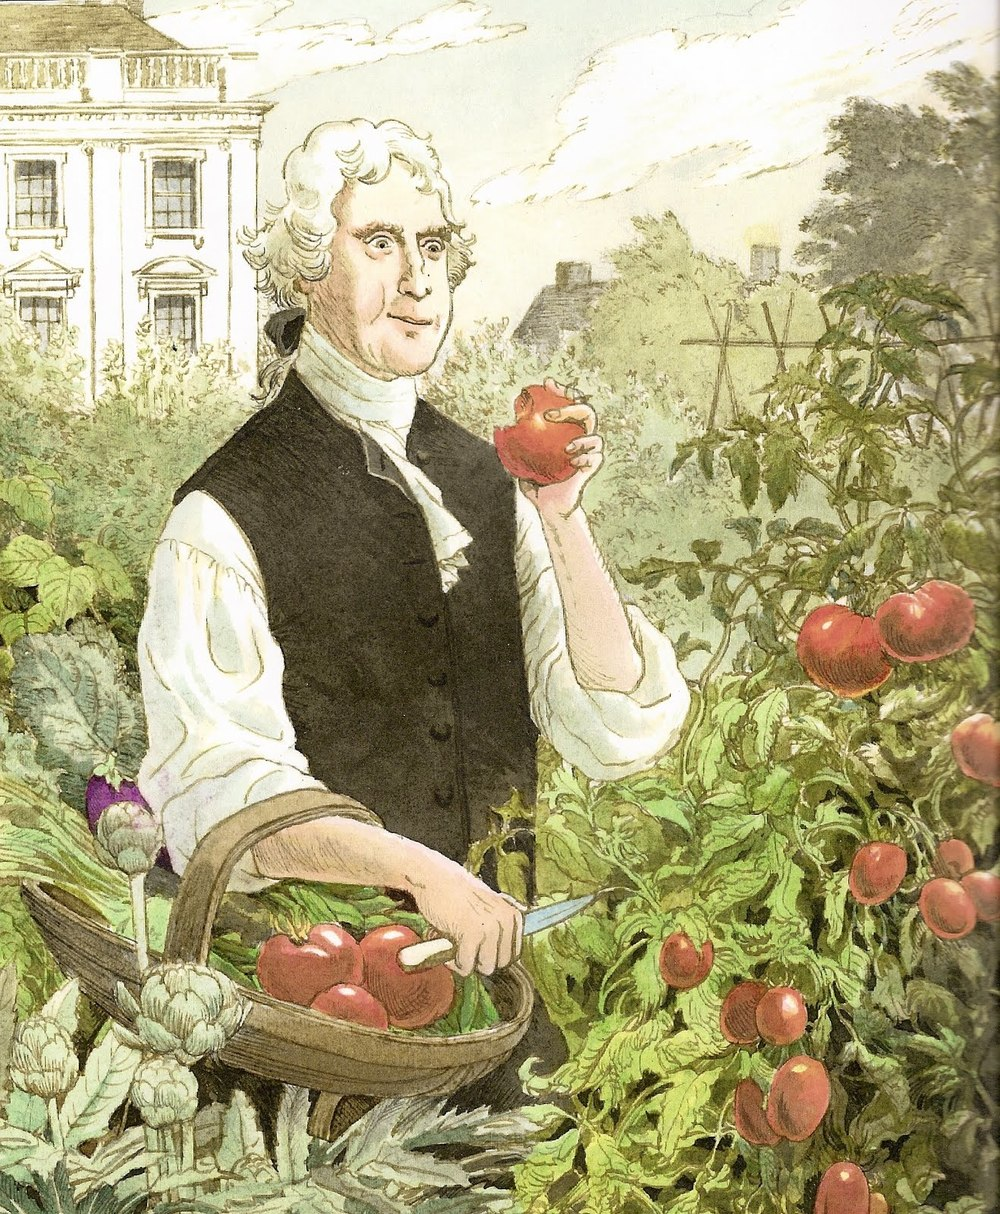 An illustration of Thomas Jefferson in the first White House garden by S.D. Schindler courtesy of The National Children's Book and Literacy Alliance.